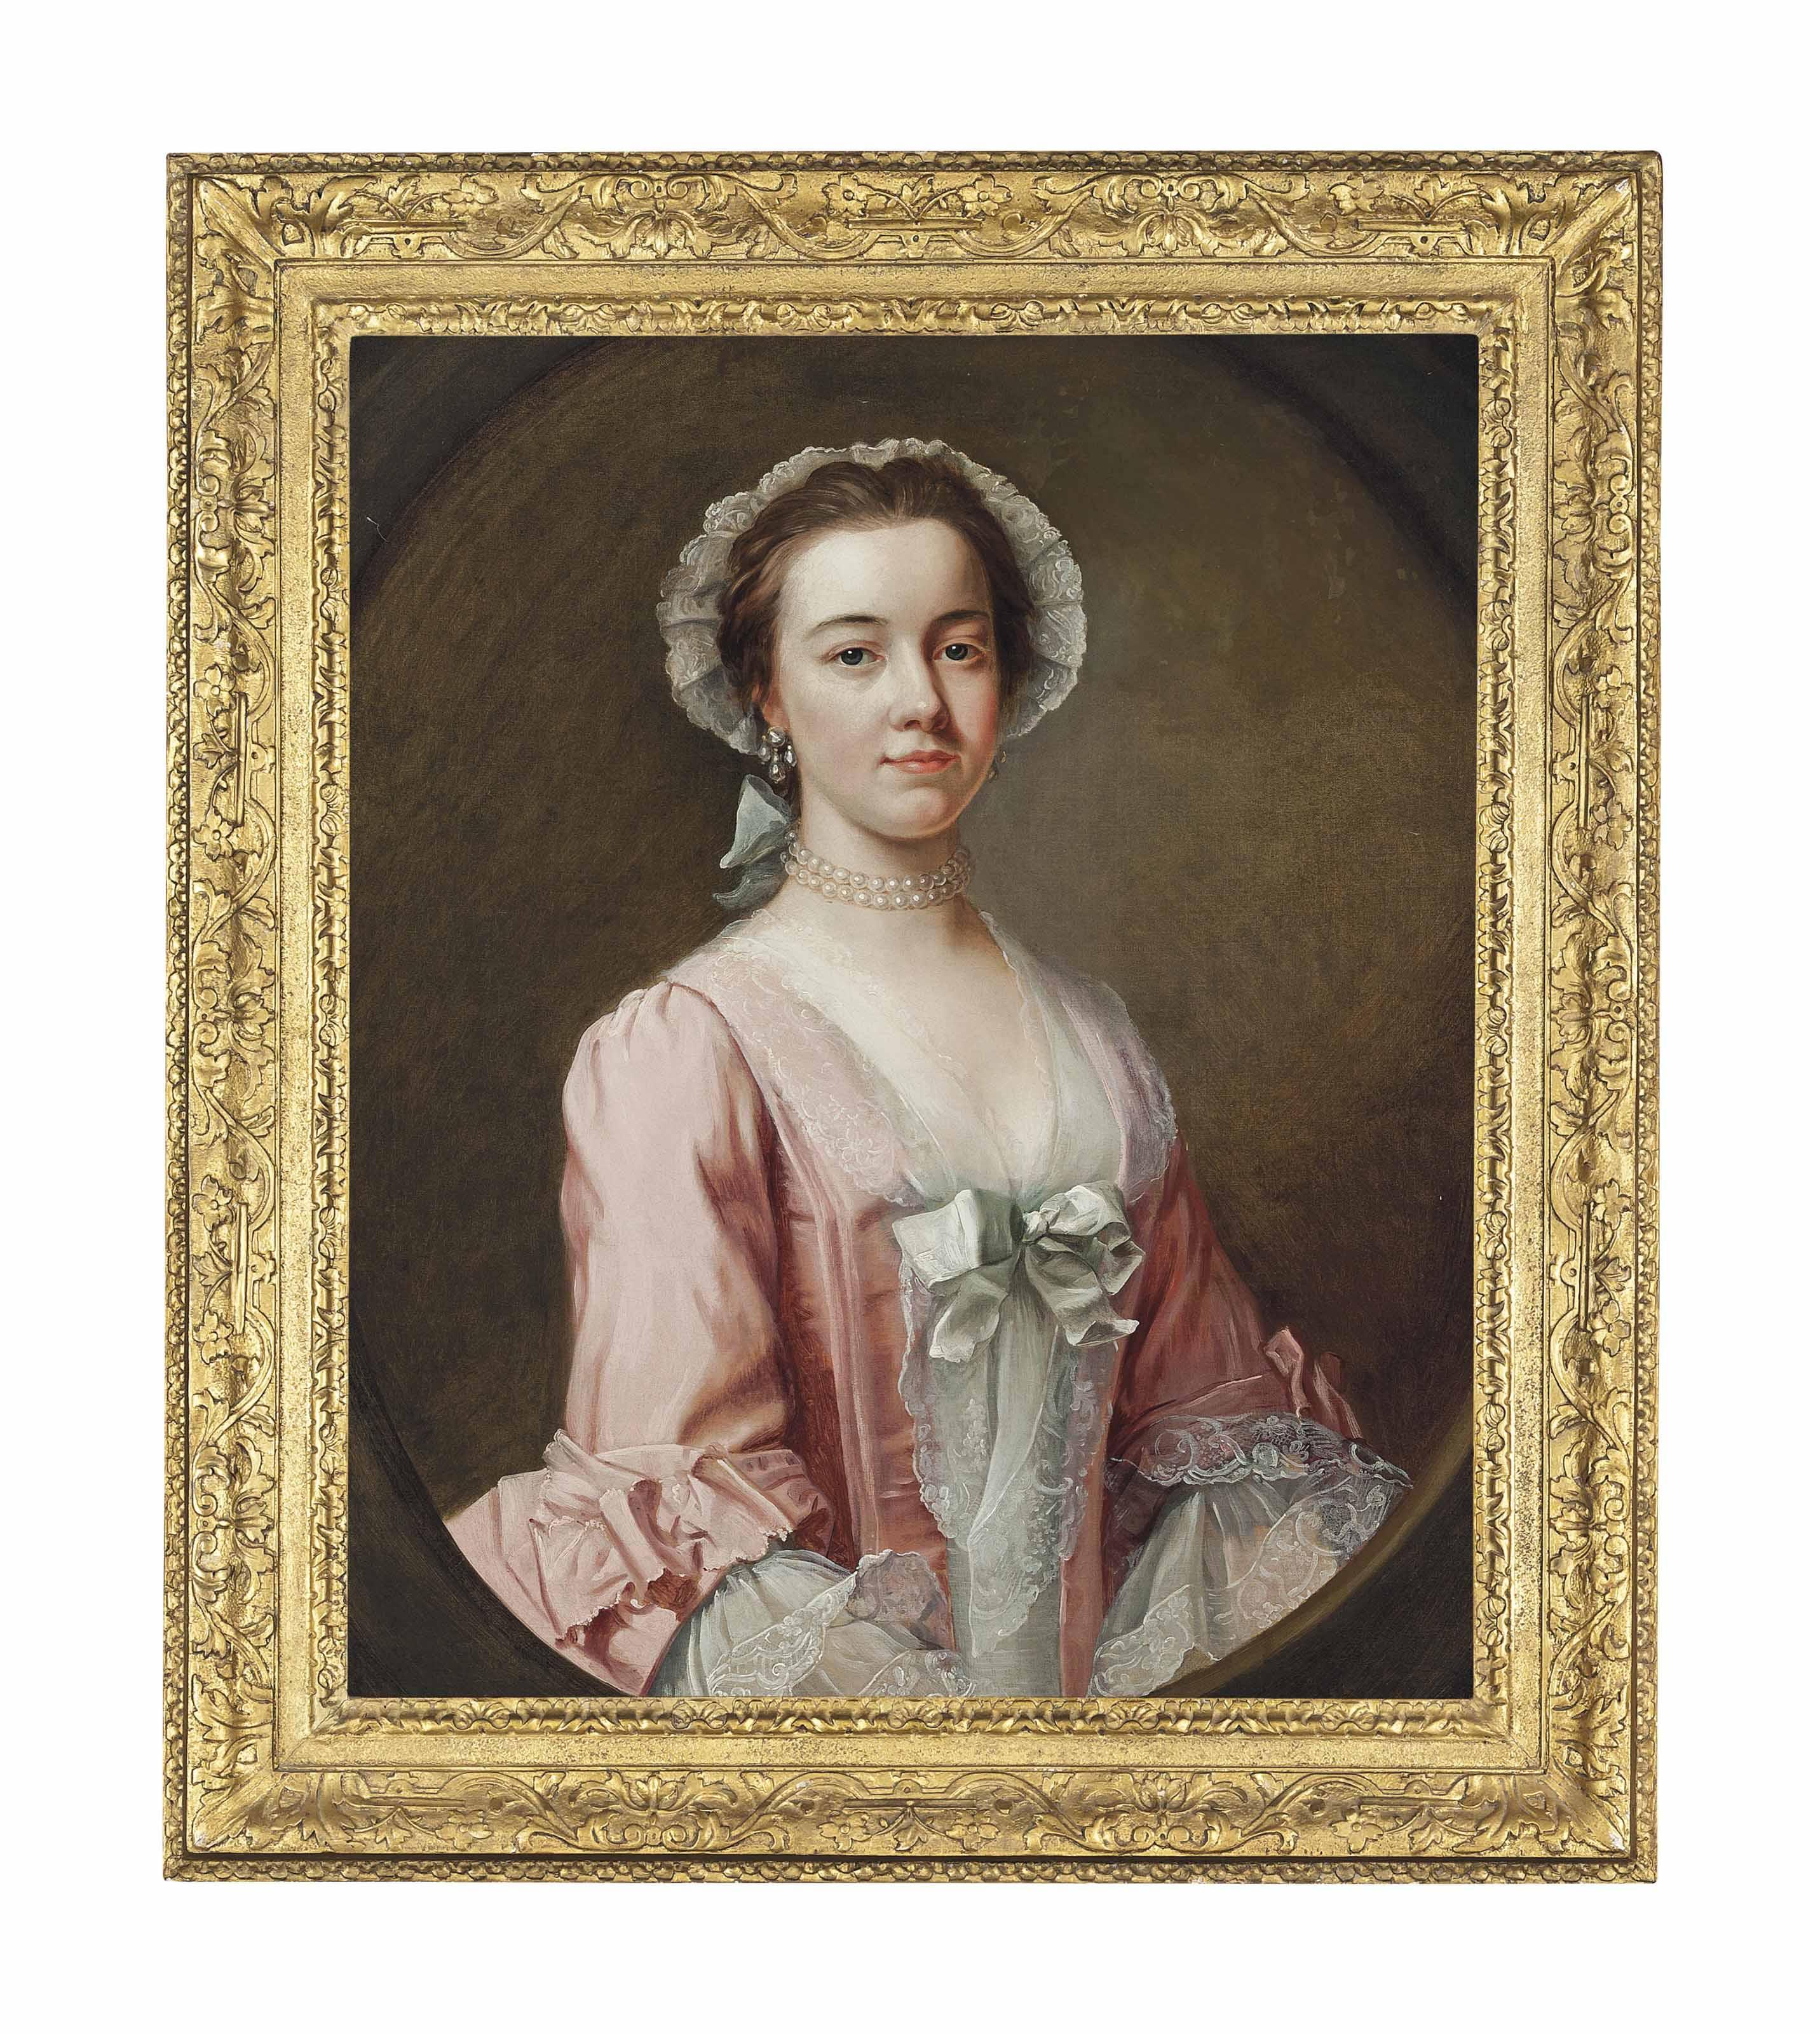 Portrait of a lady, traditionally identified as Ann Burney, half-length, in a pink dress with a lace bonnet and sleeves, with pearl earrings and a choker, in a feigned oval